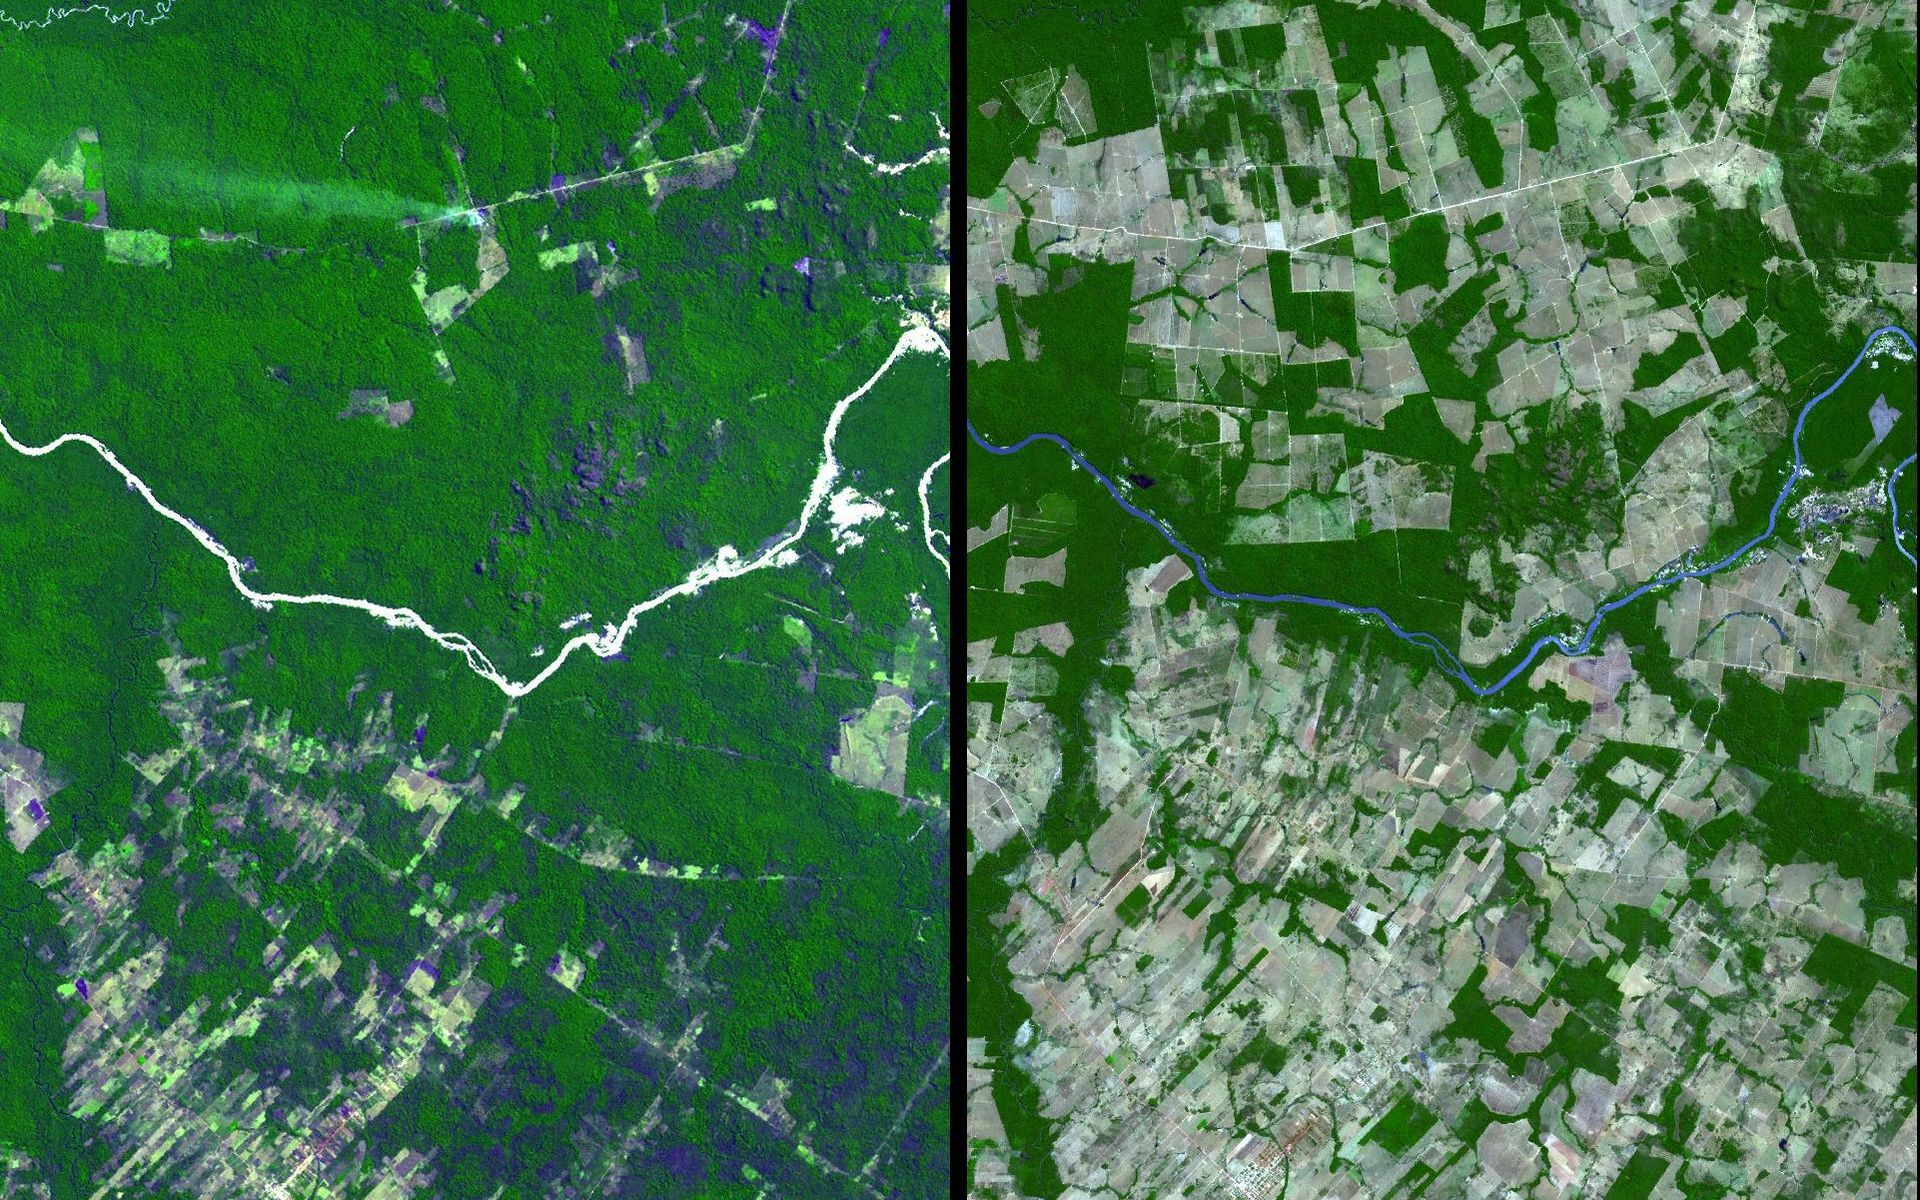 From 1998 to 2006, the Mato Grosso region of Brazil lost on average 19,000 square kilometres of rainforest a year. The region is known for soybean production. https://www.jpl.nasa.gov/spaceimages/details.php?id=PIA11420